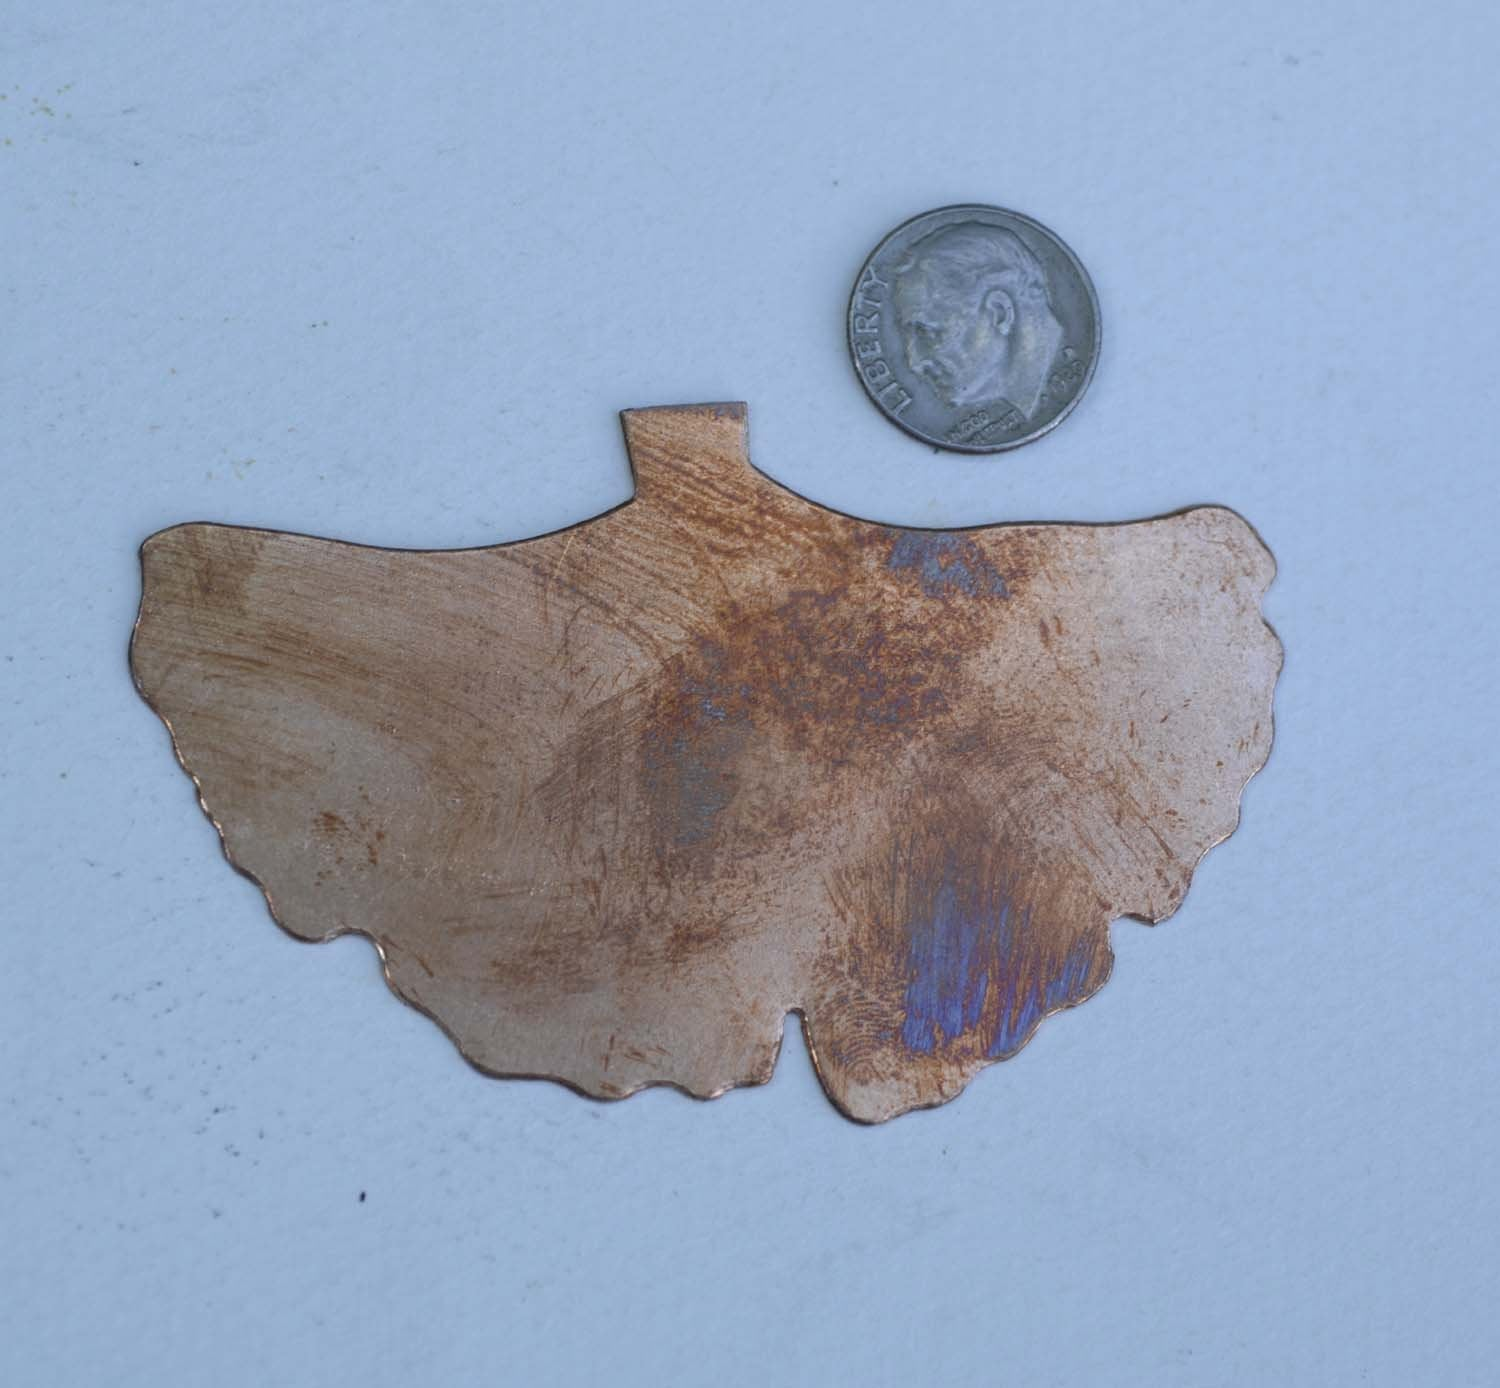 Buy Large Ginkgo Leaf, for Enameling Stamping Texturing Blanks- Variety of Metals online